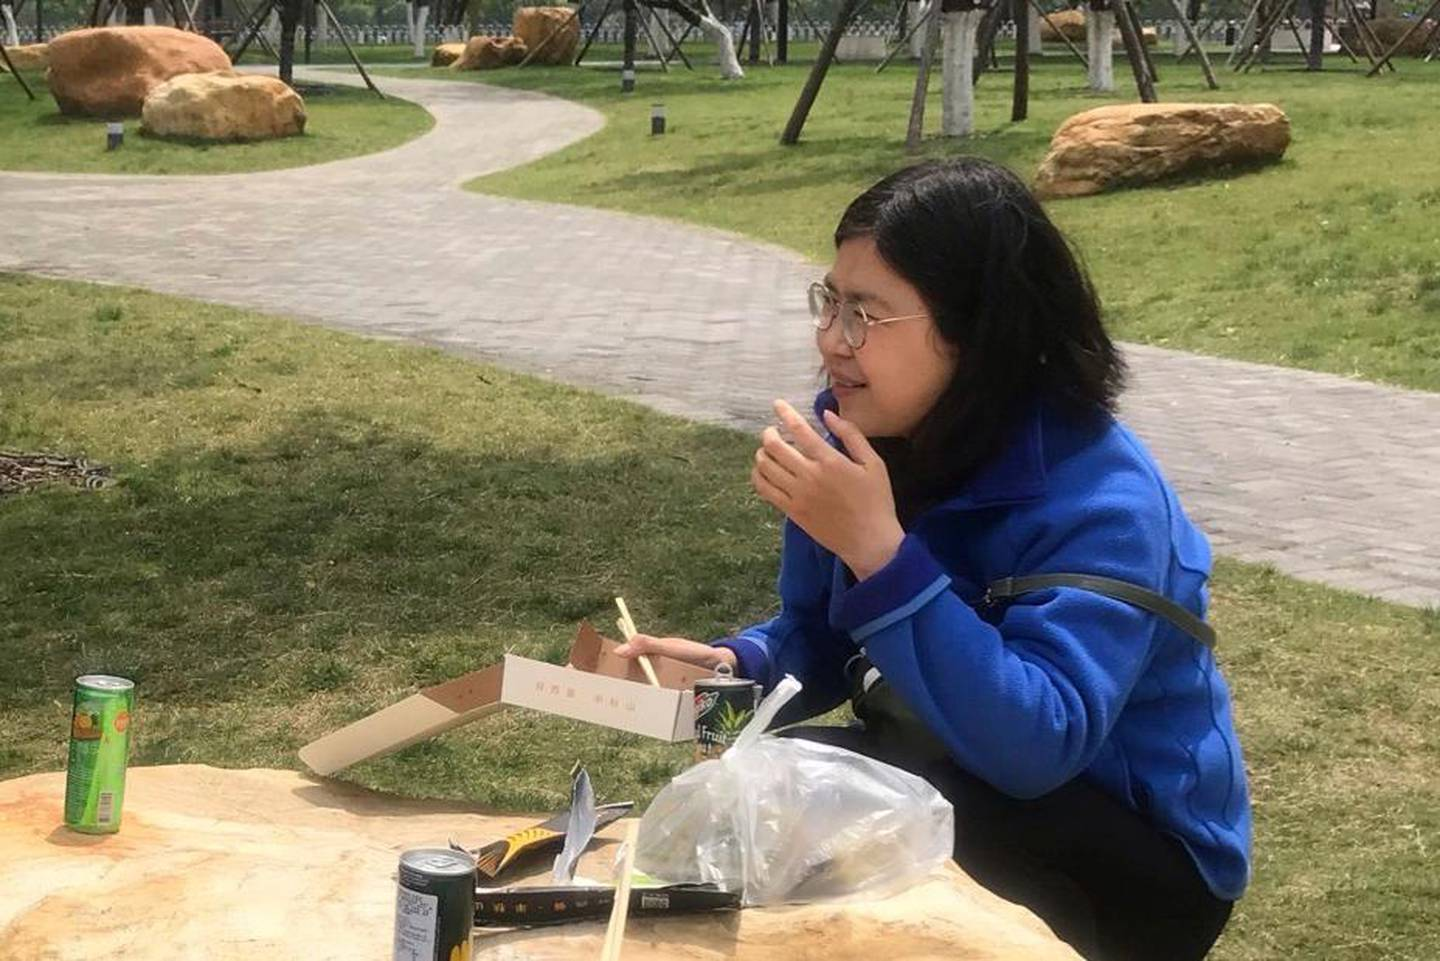 """In this photo taken April 14, 2020 and released by Melanie Wang, Zhang Zhan eats a meal at a park during a visit to Wuhan in central China's Hubei province. A Chinese court on Monday sentenced the former lawyer who reported on the early stage of the coronavirus outbreak to four years in prison on charges of """"picking fights and provoking trouble,"""" one of her lawyers said. (Melanie Wang via AP)"""